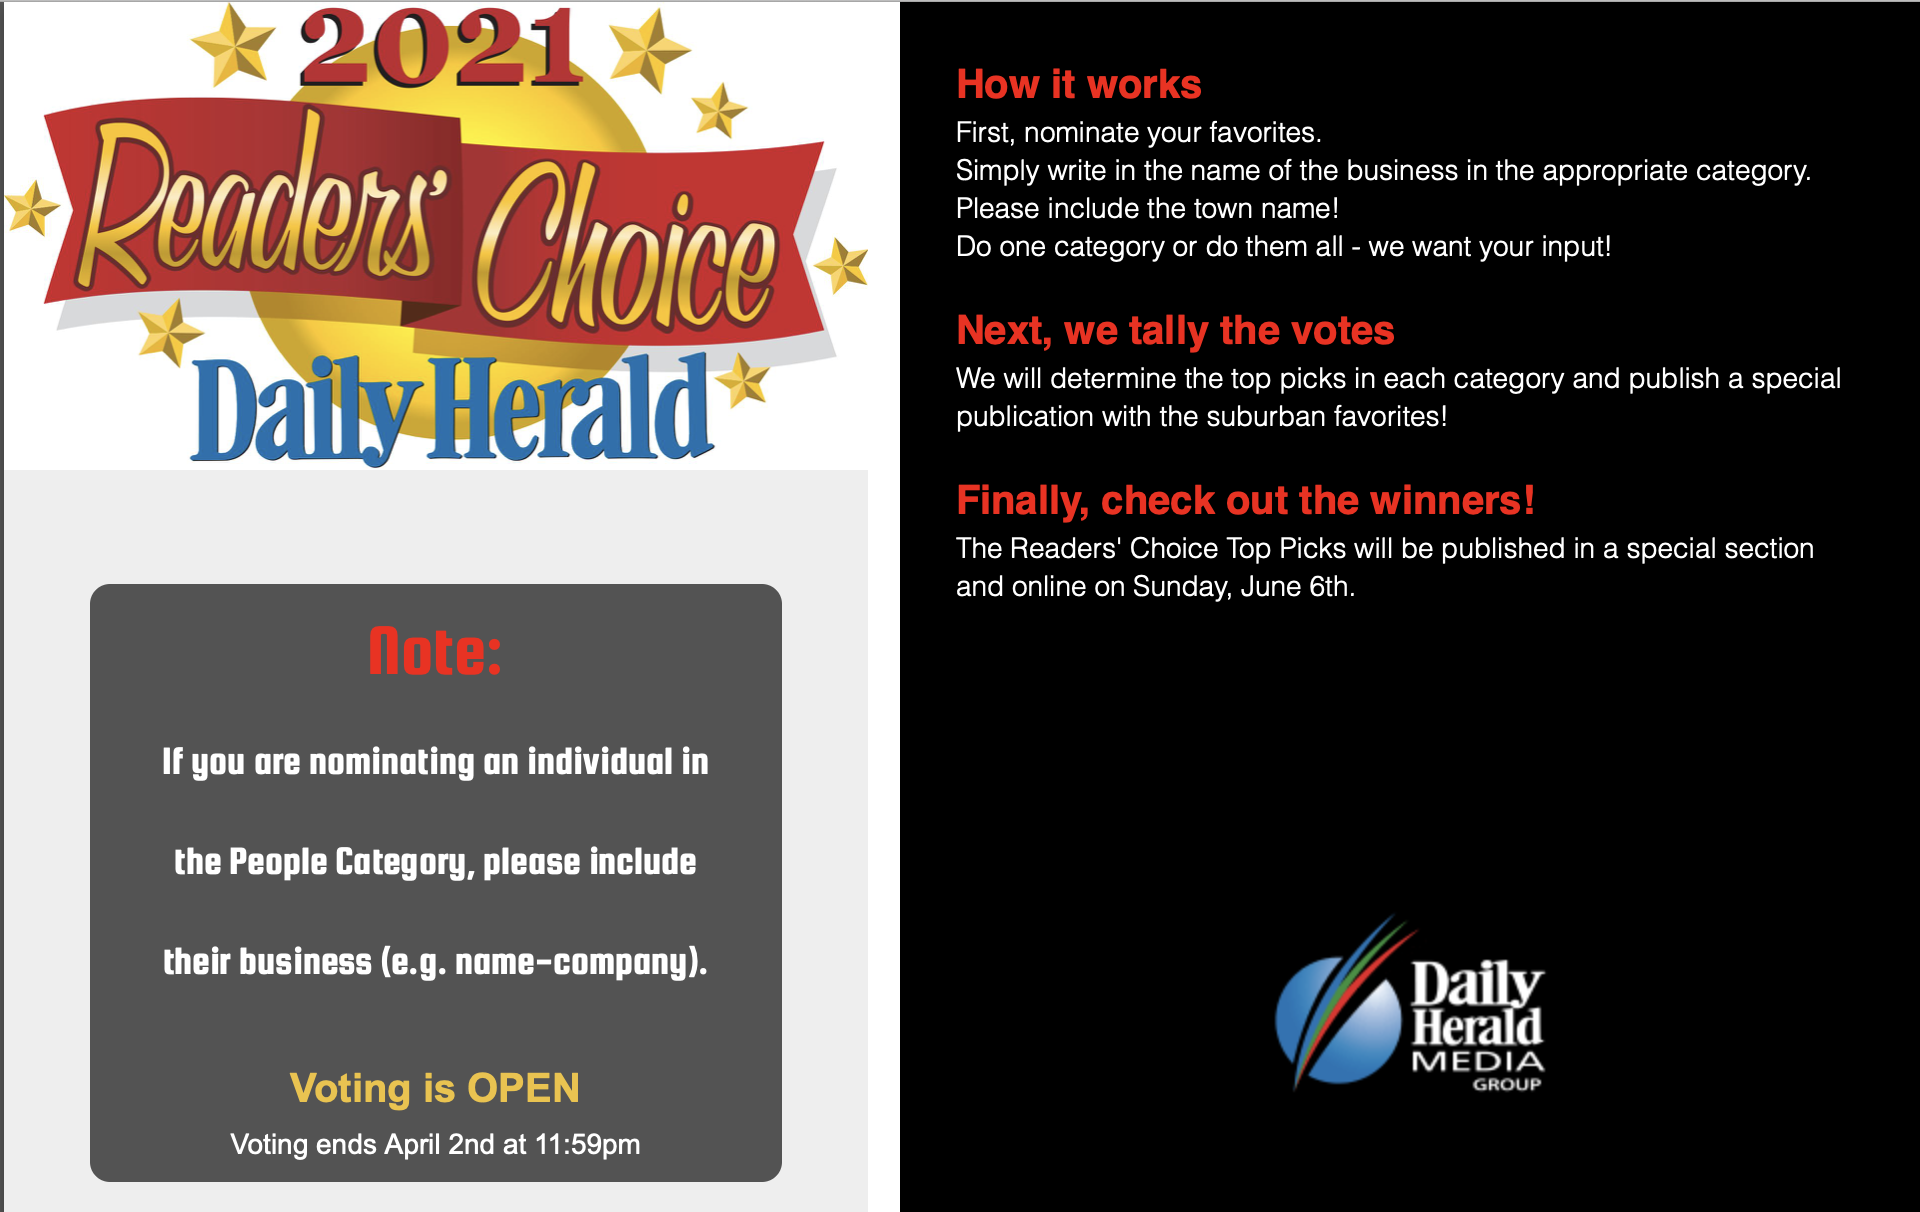 2021 Reader's Choice Daily Herald home page